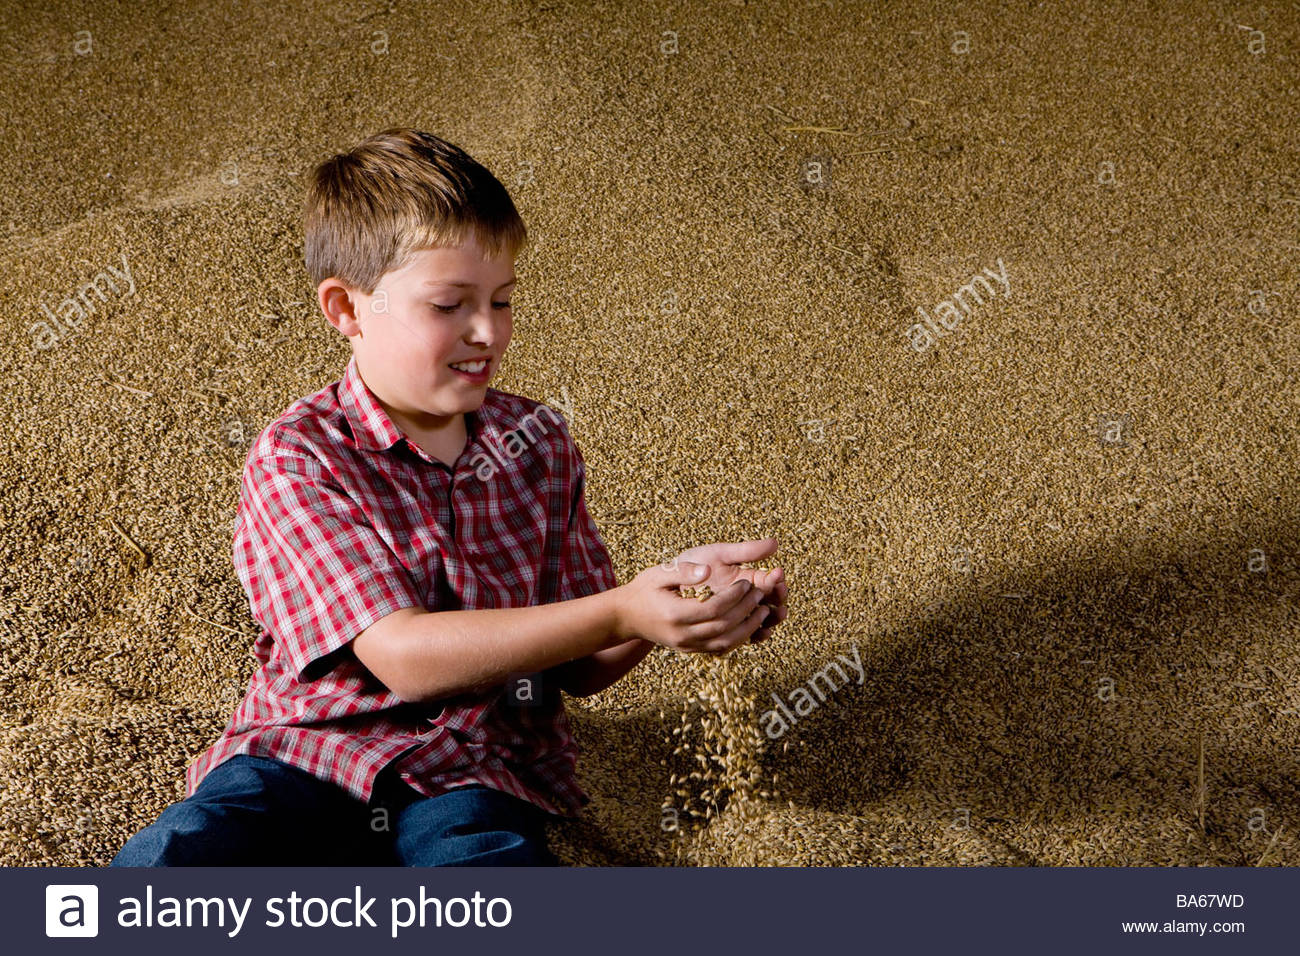 Boy playing with wheat grains from mound - Stock Image